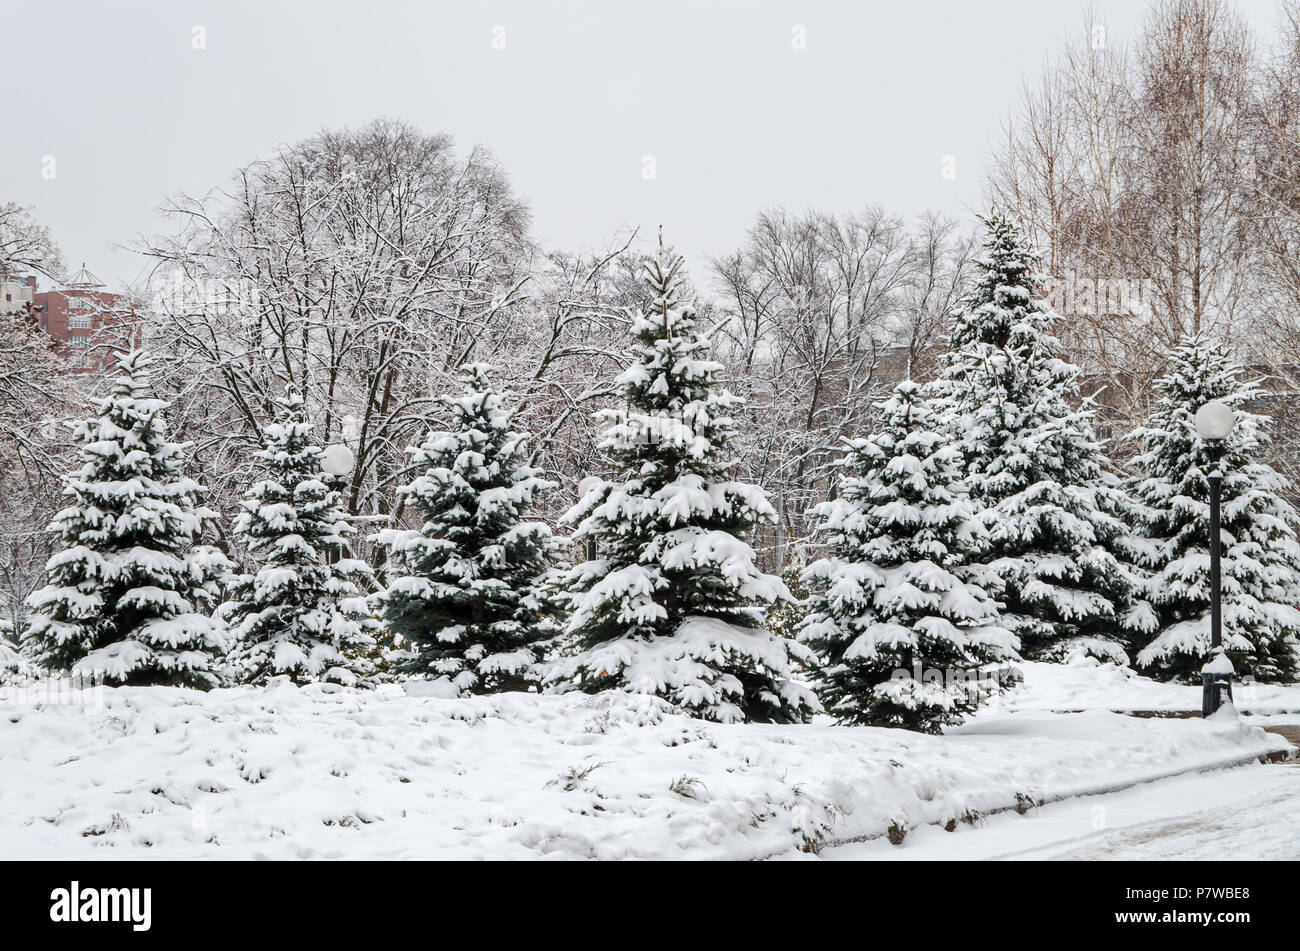 Cold January snow covered grove of young spruces in the city park - Stock Image